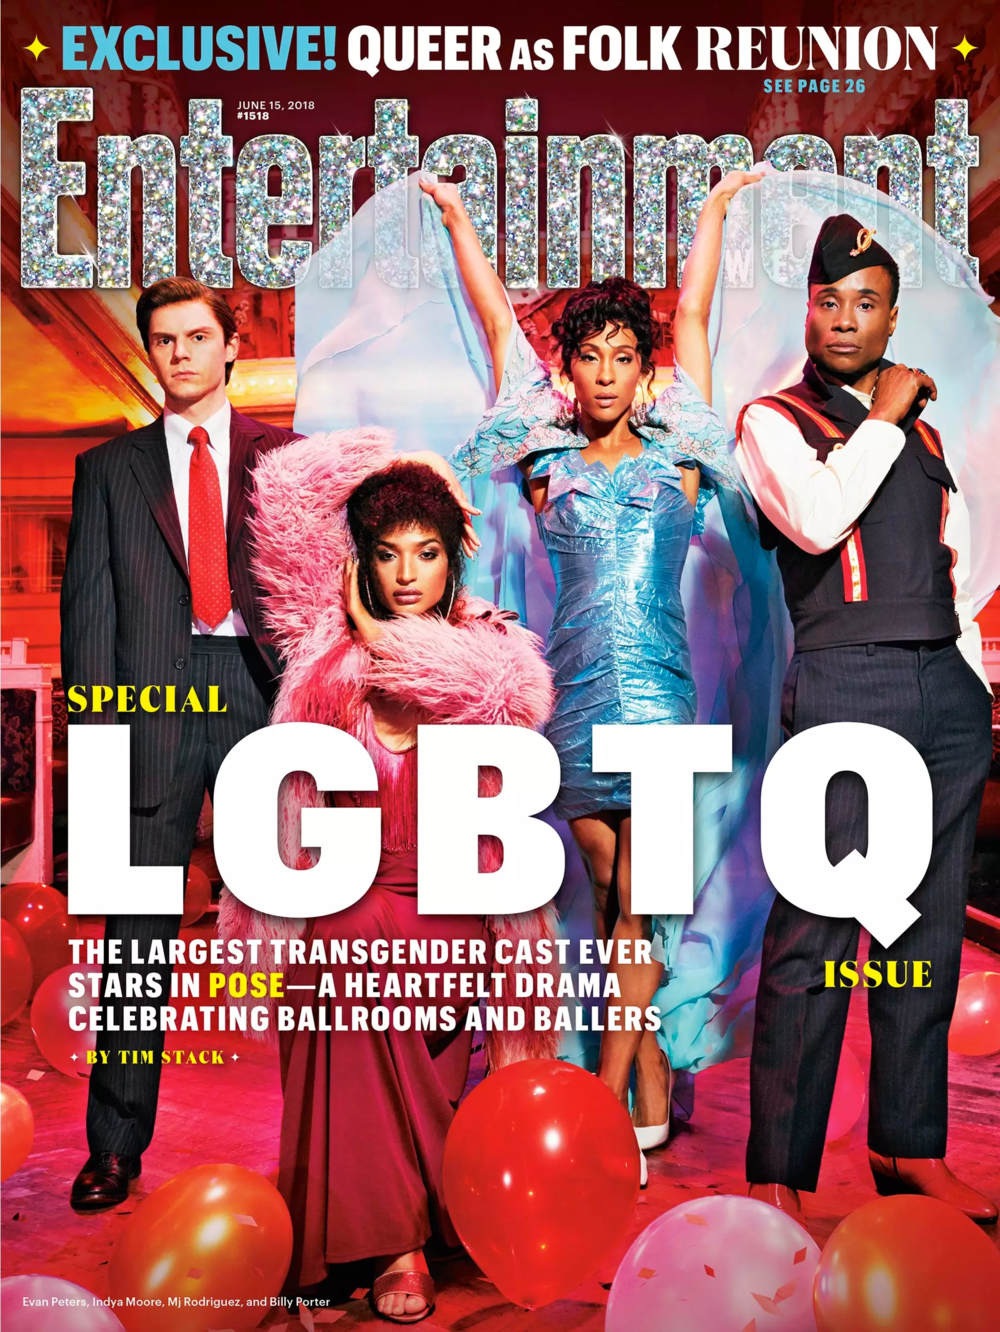 Entertainment Weekly Logo Treatment - Entertainment Weekly asked me to do a special logo treatment for their annual LGBTQ issue. The cover features the new show Pose, set in the 1987 New York ballroom scene. To match the extravagant photo, and give a tasteful nod to pride, EW asked for a glittery, sparkly version of their logo.